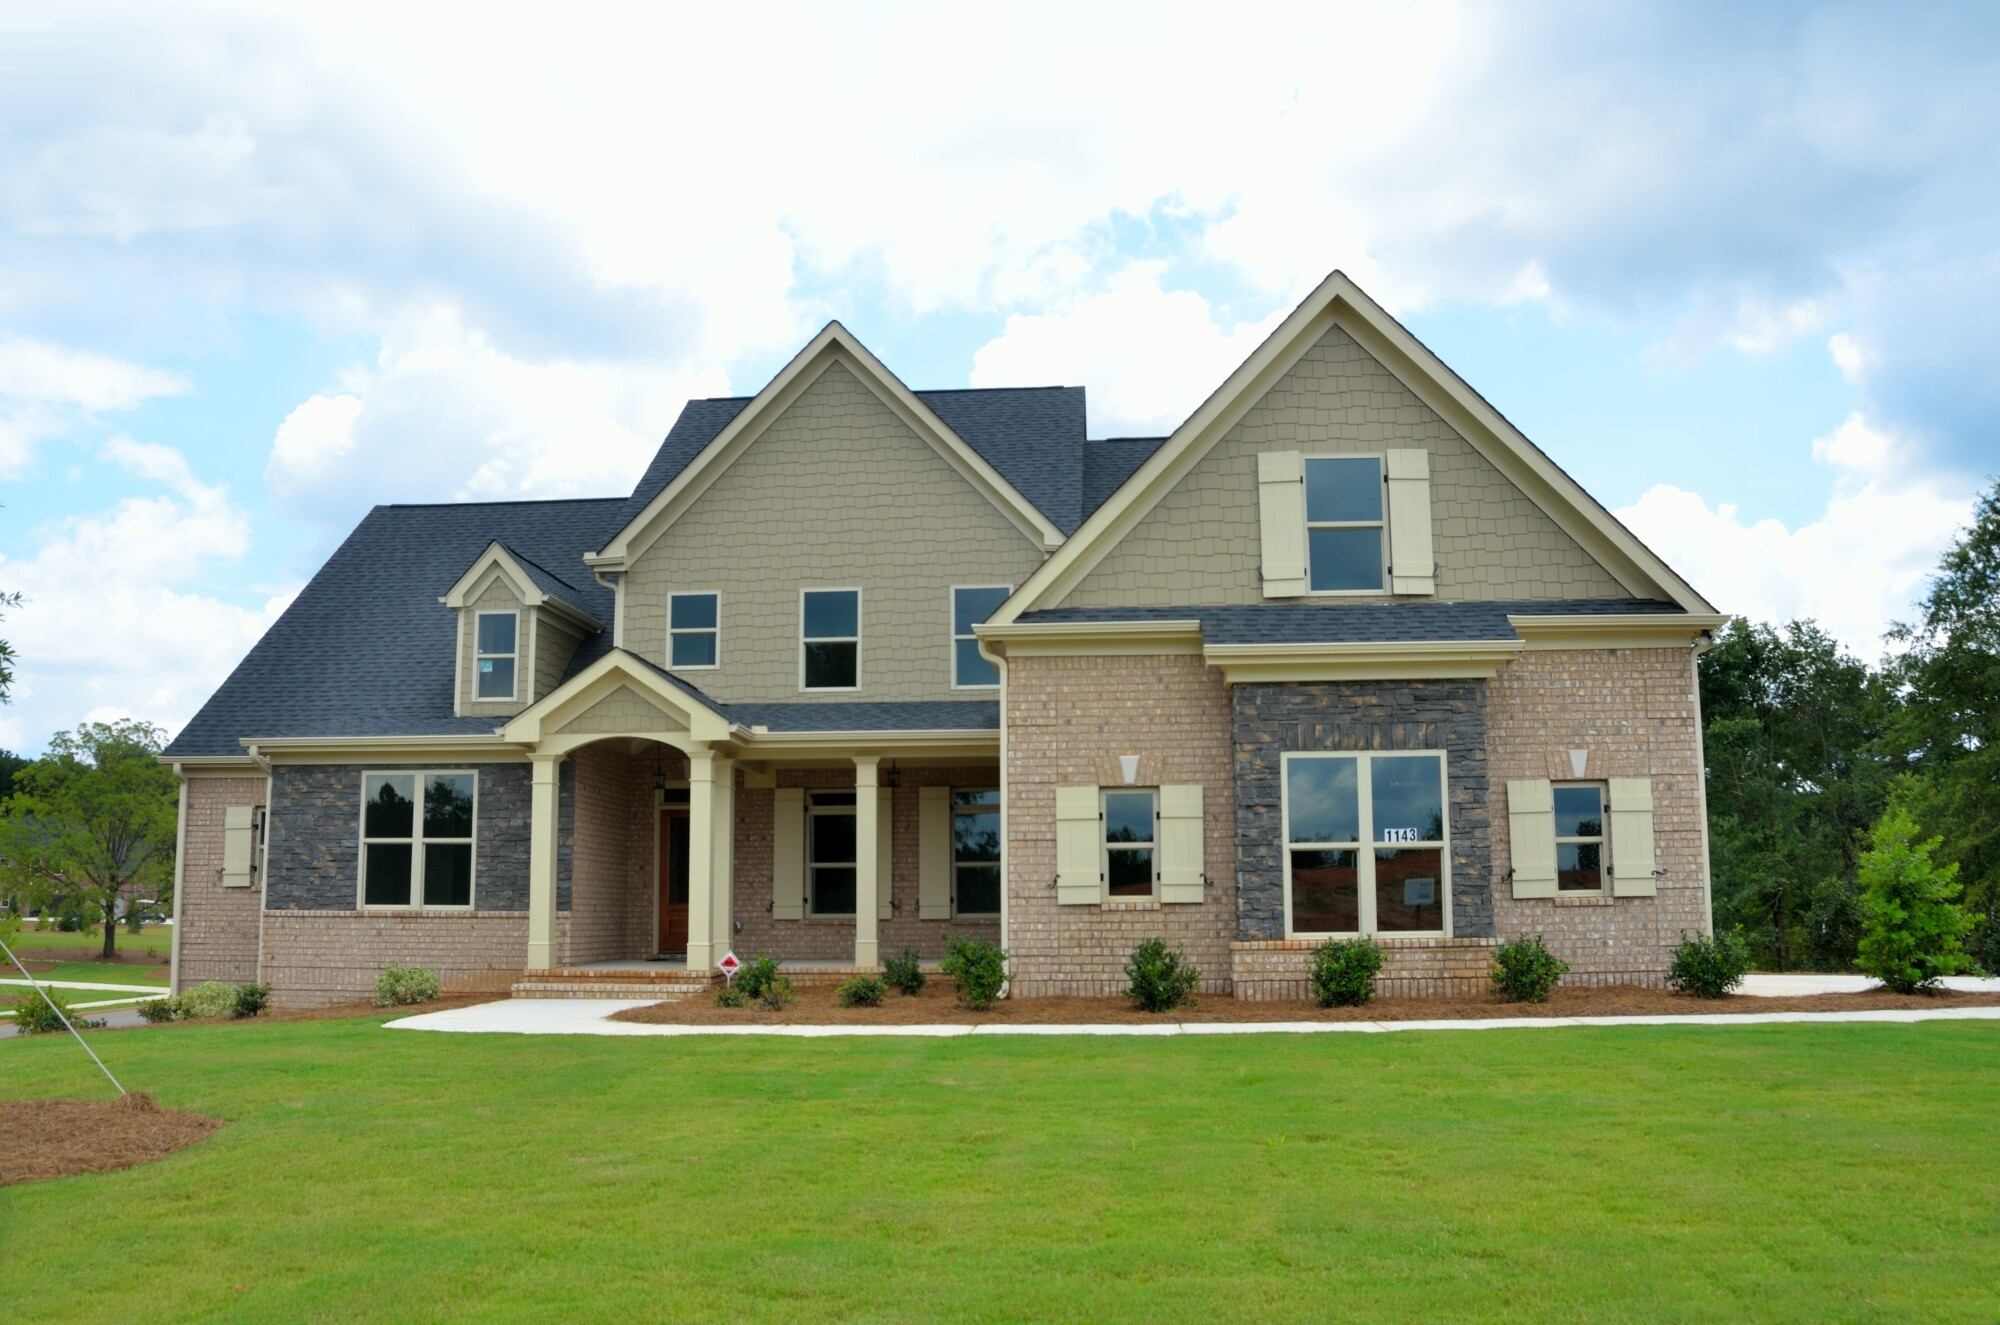 What to Look for When Buying an Investment Property